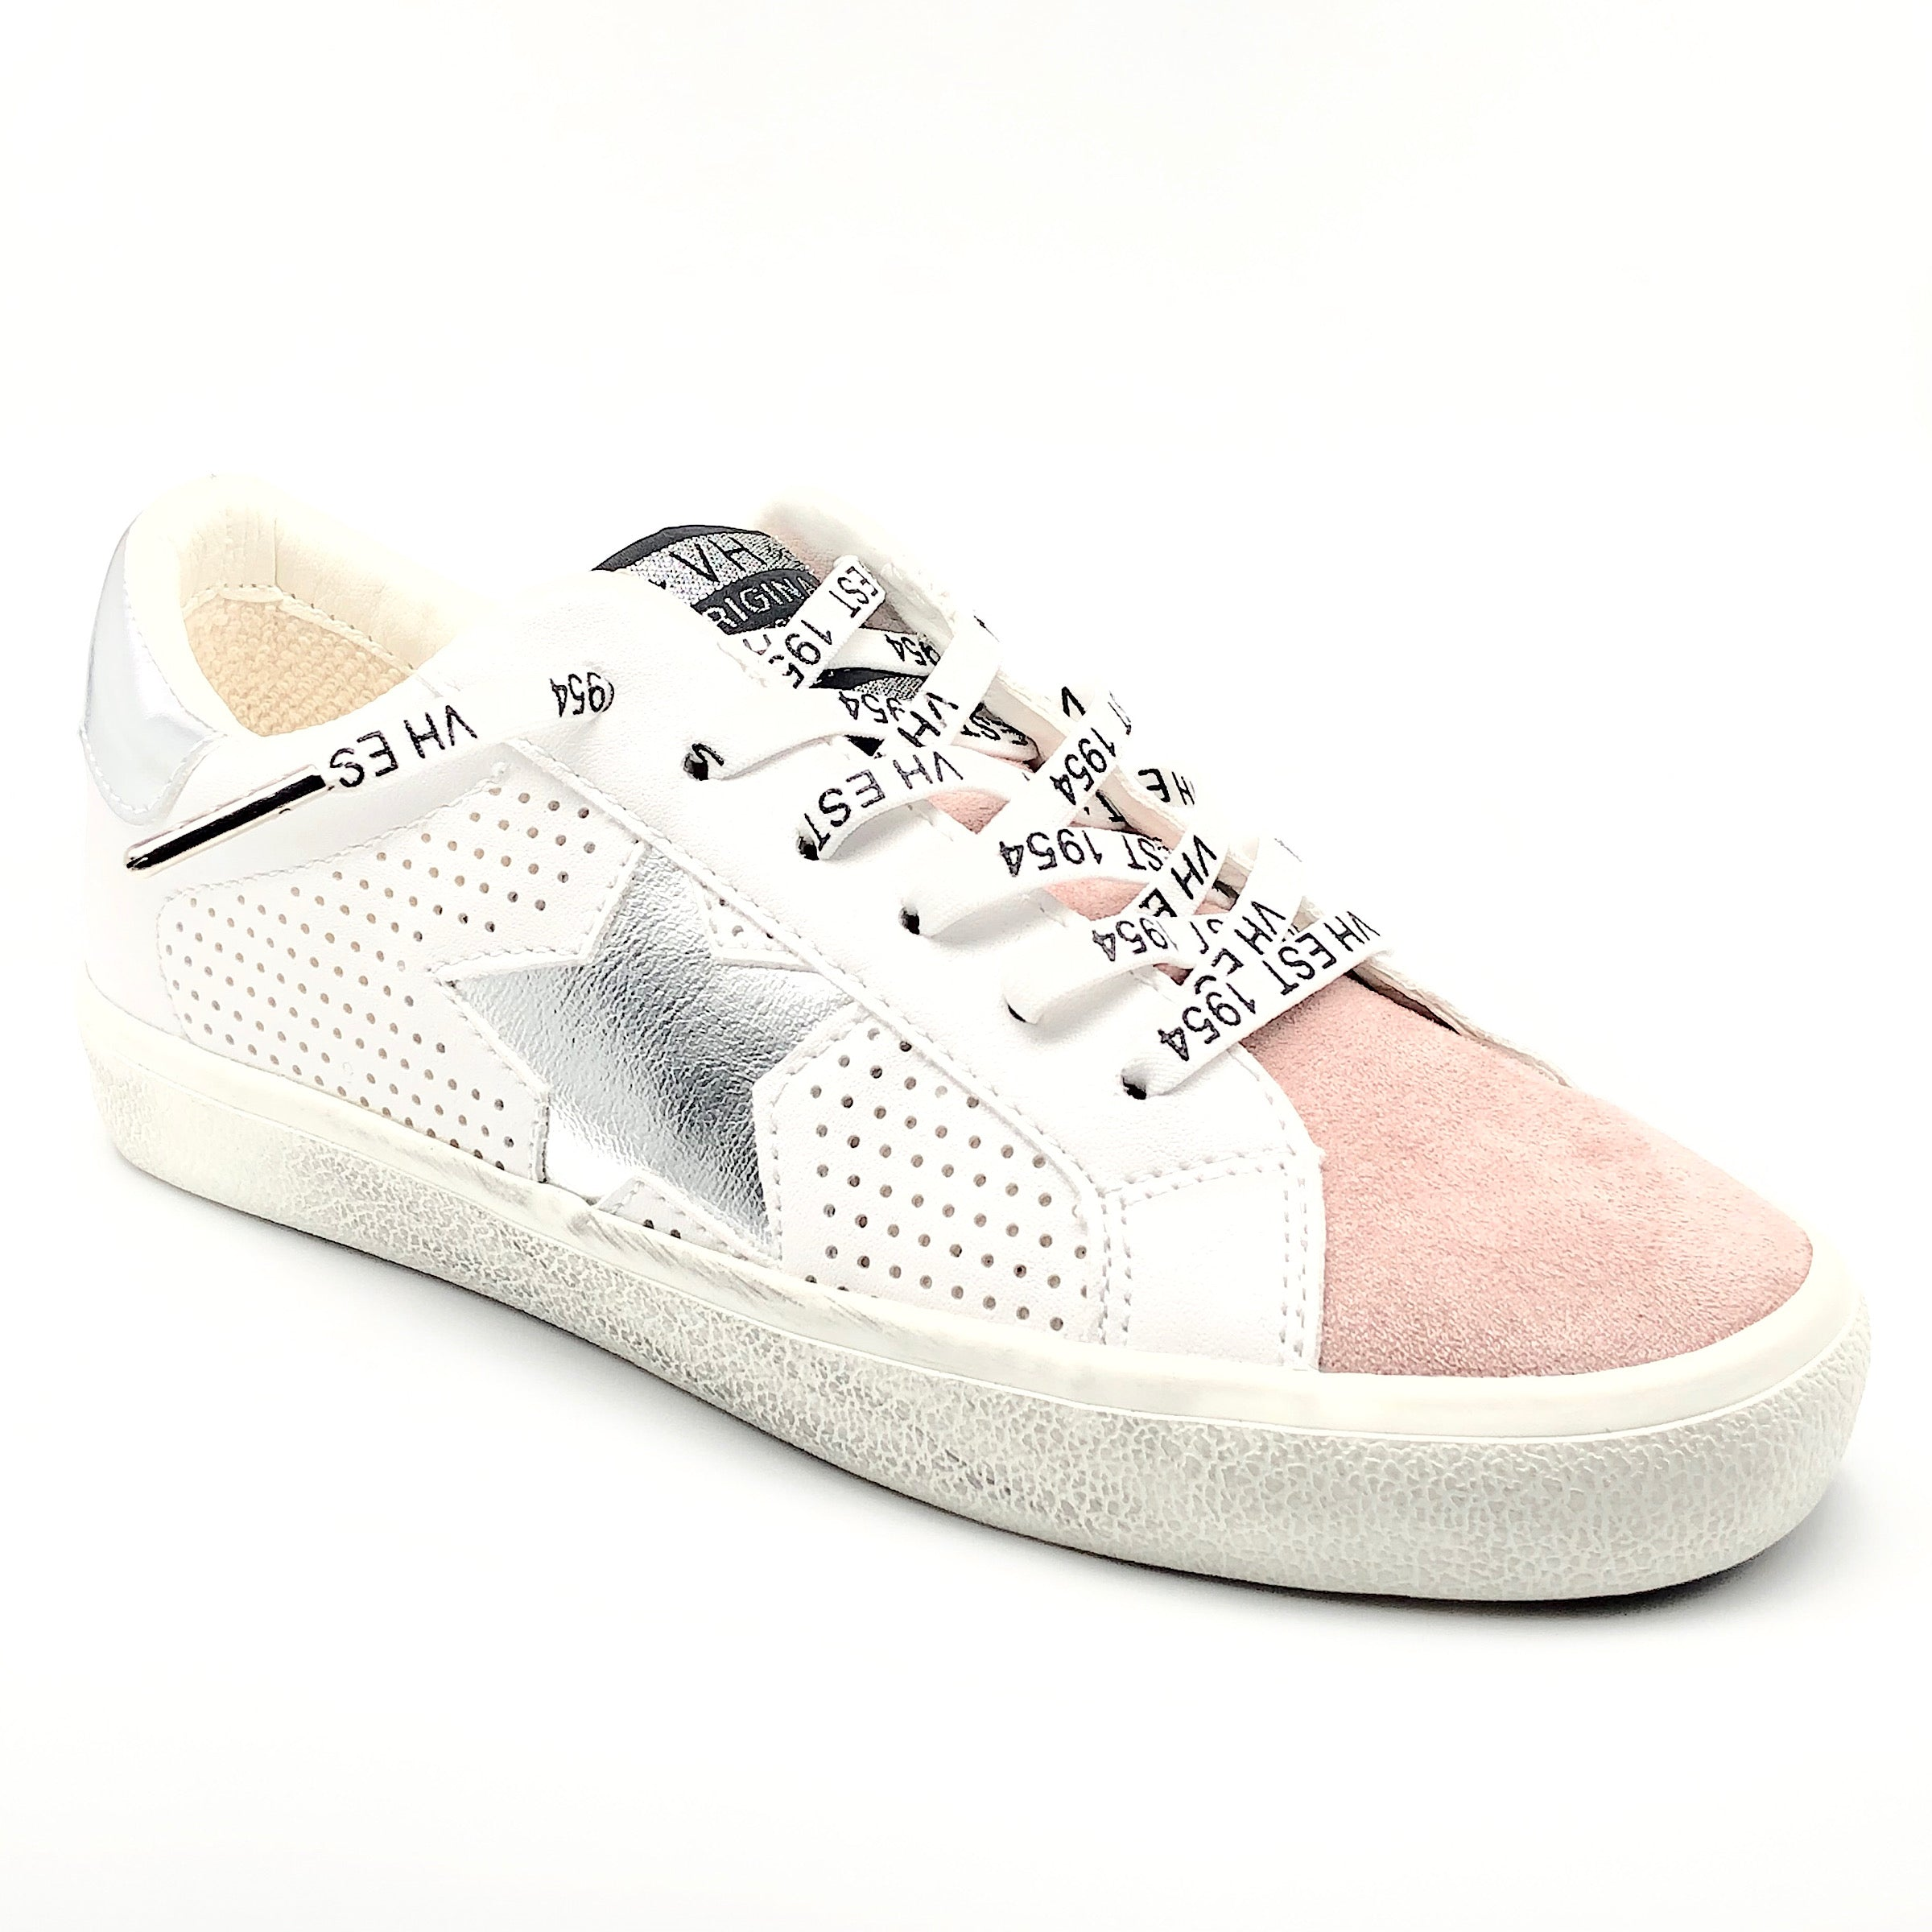 Gadol Vintage Havana The Star Perforated Lace Sneaker in White Pewter This best selling perforated white lace sneaker with pewter star is sylish, chic & versatile. Synthetic & leather upper, rubber sole, elastic laces for easy slip-on styling.